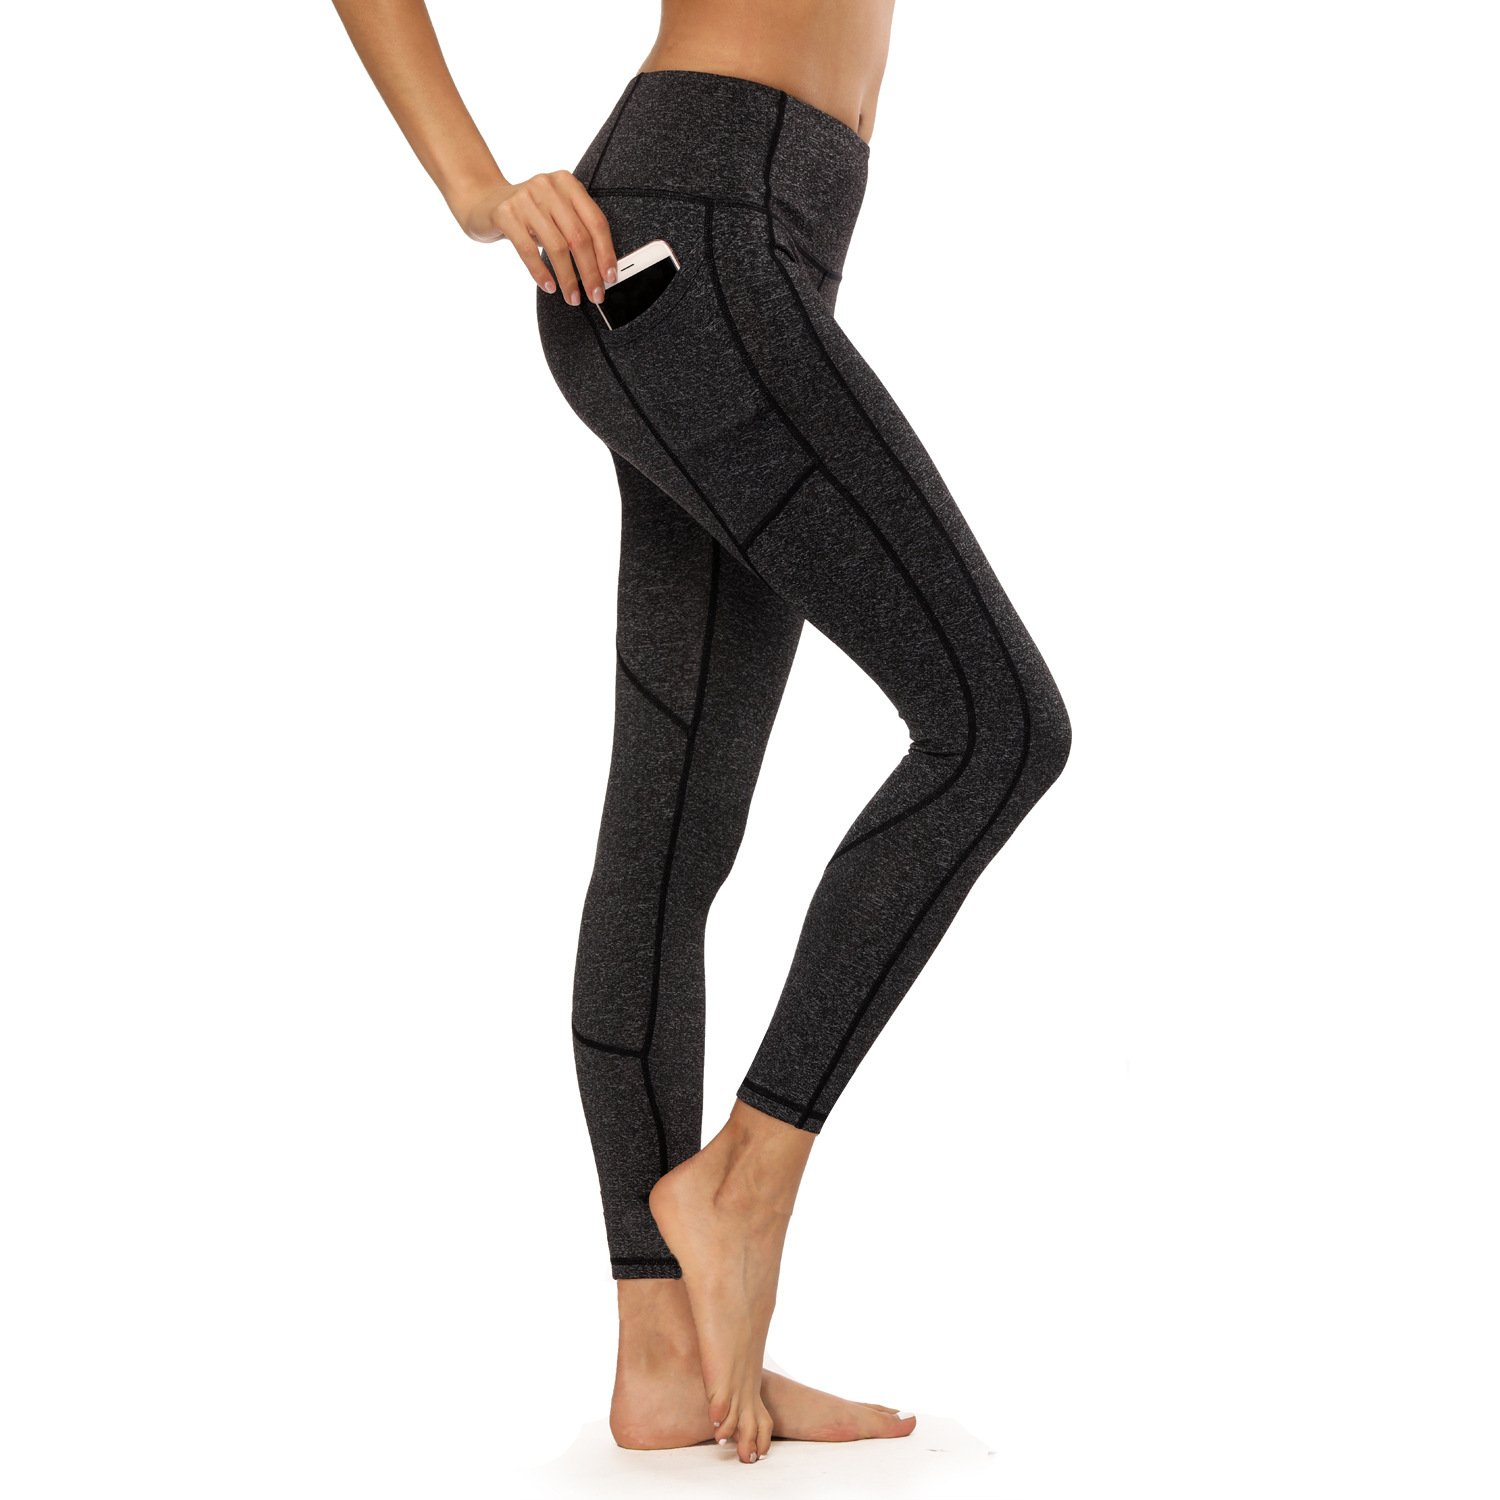 Crafeel High Waisted Yoga Pants Workout Leggings Tights For Women